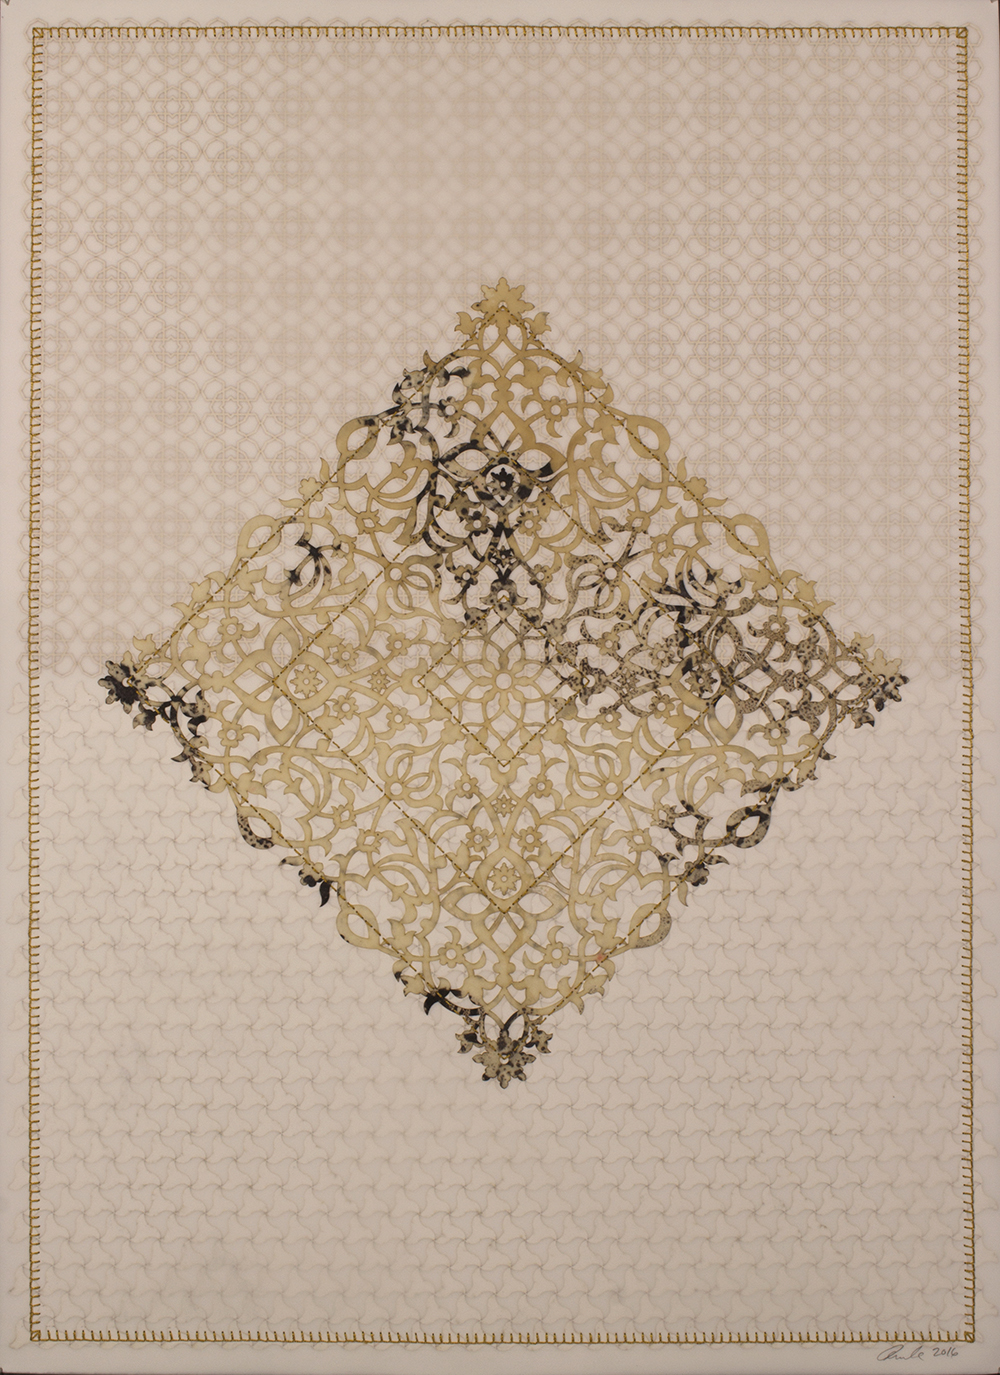 "Antique Lace 4   Mixed media on paper (Laser-cut patterns on paper with mylar, encaustic and embroidery)  30"" x 22"" 2016  Walking With My Mother's Shadow-Artist Statement"